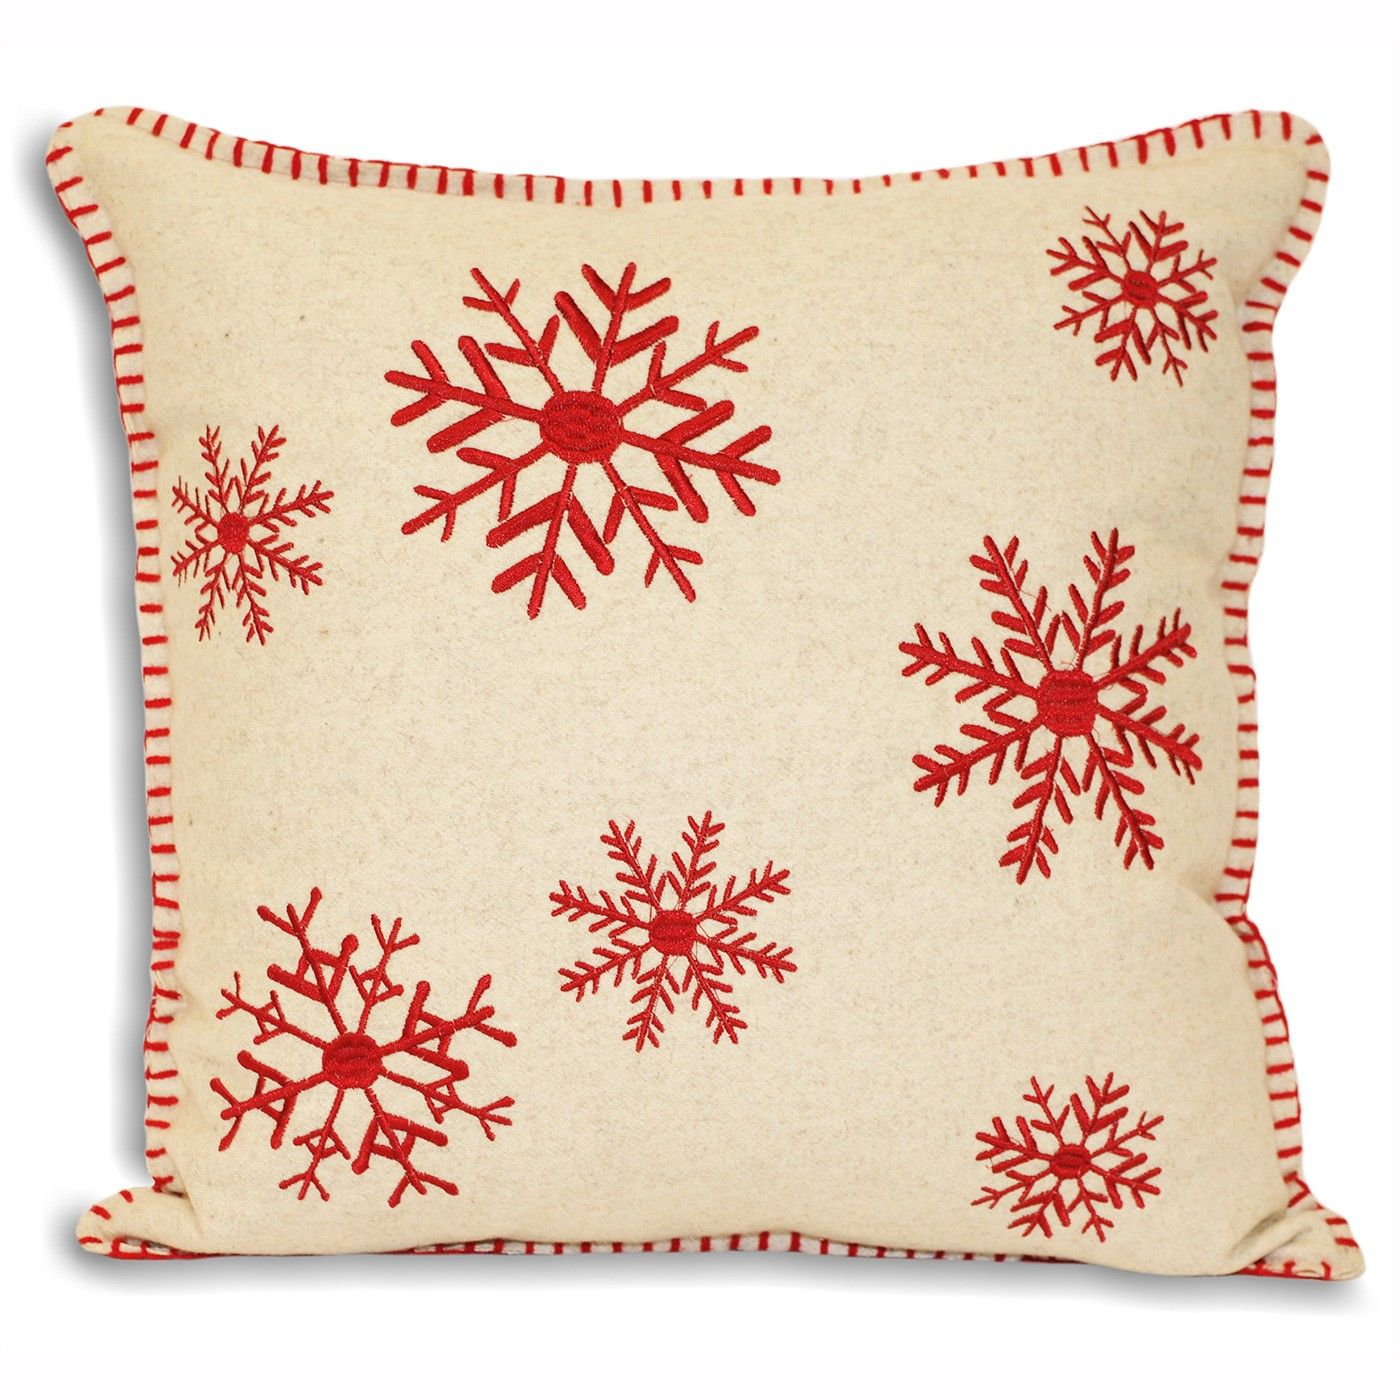 Cushion Covers Christmas Cushions Square Christmas Cushion Cover Red Snowflake